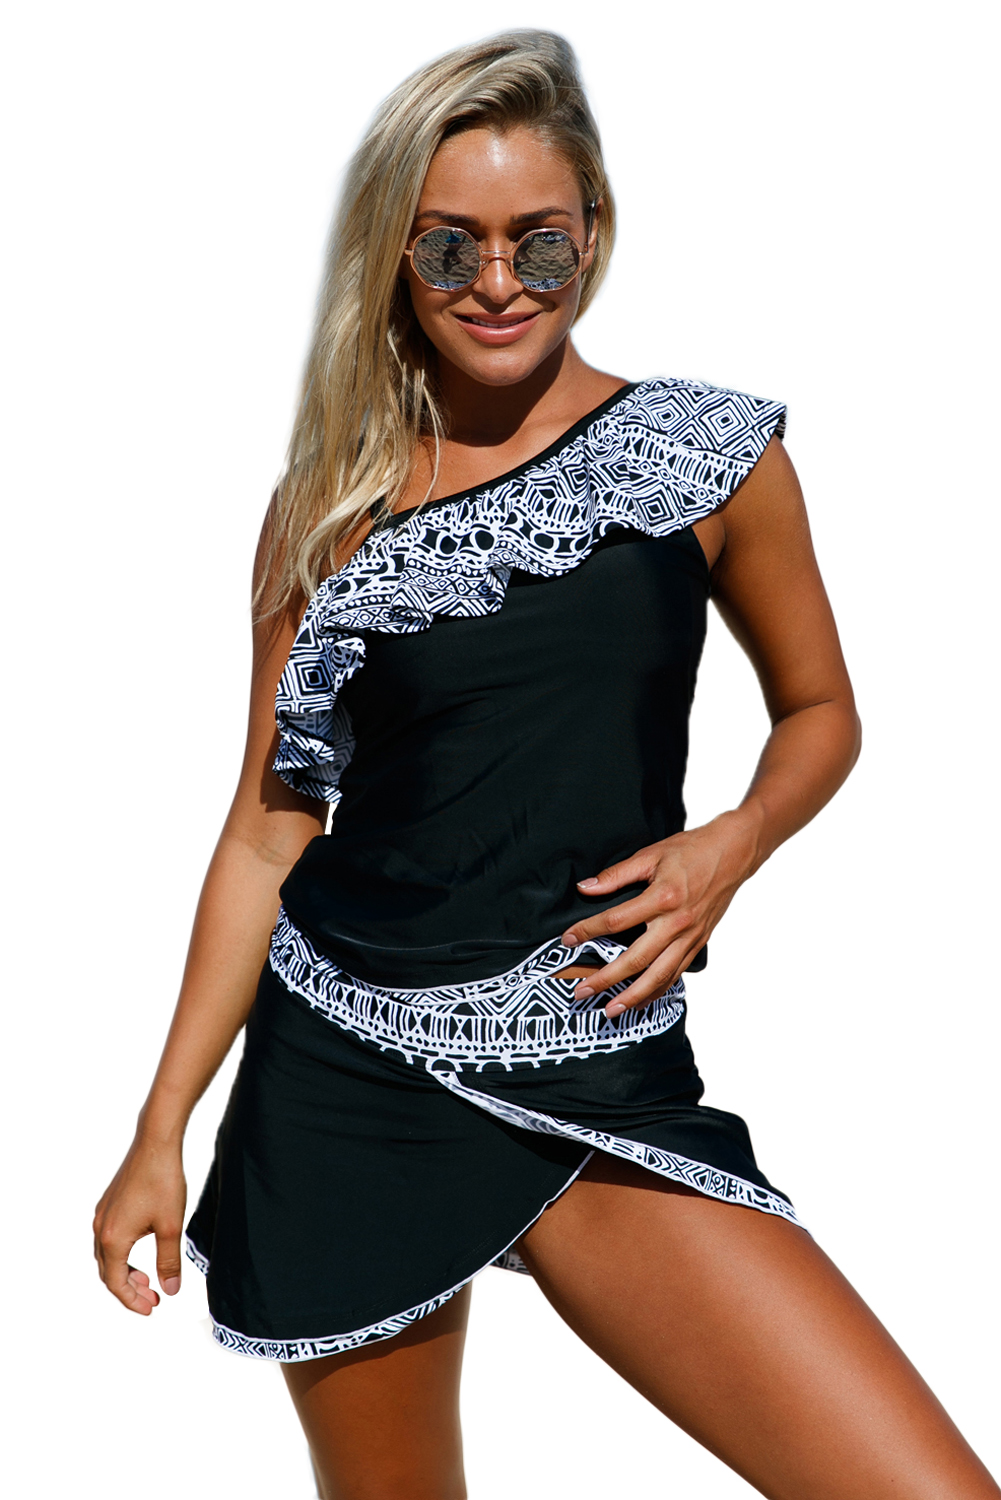 Sexy Women Ruffle One Shoulder Strap Swimsuit With Tankini Top And Skort Bottom Two Pieces Bathingsuit Beachwear Swimwear